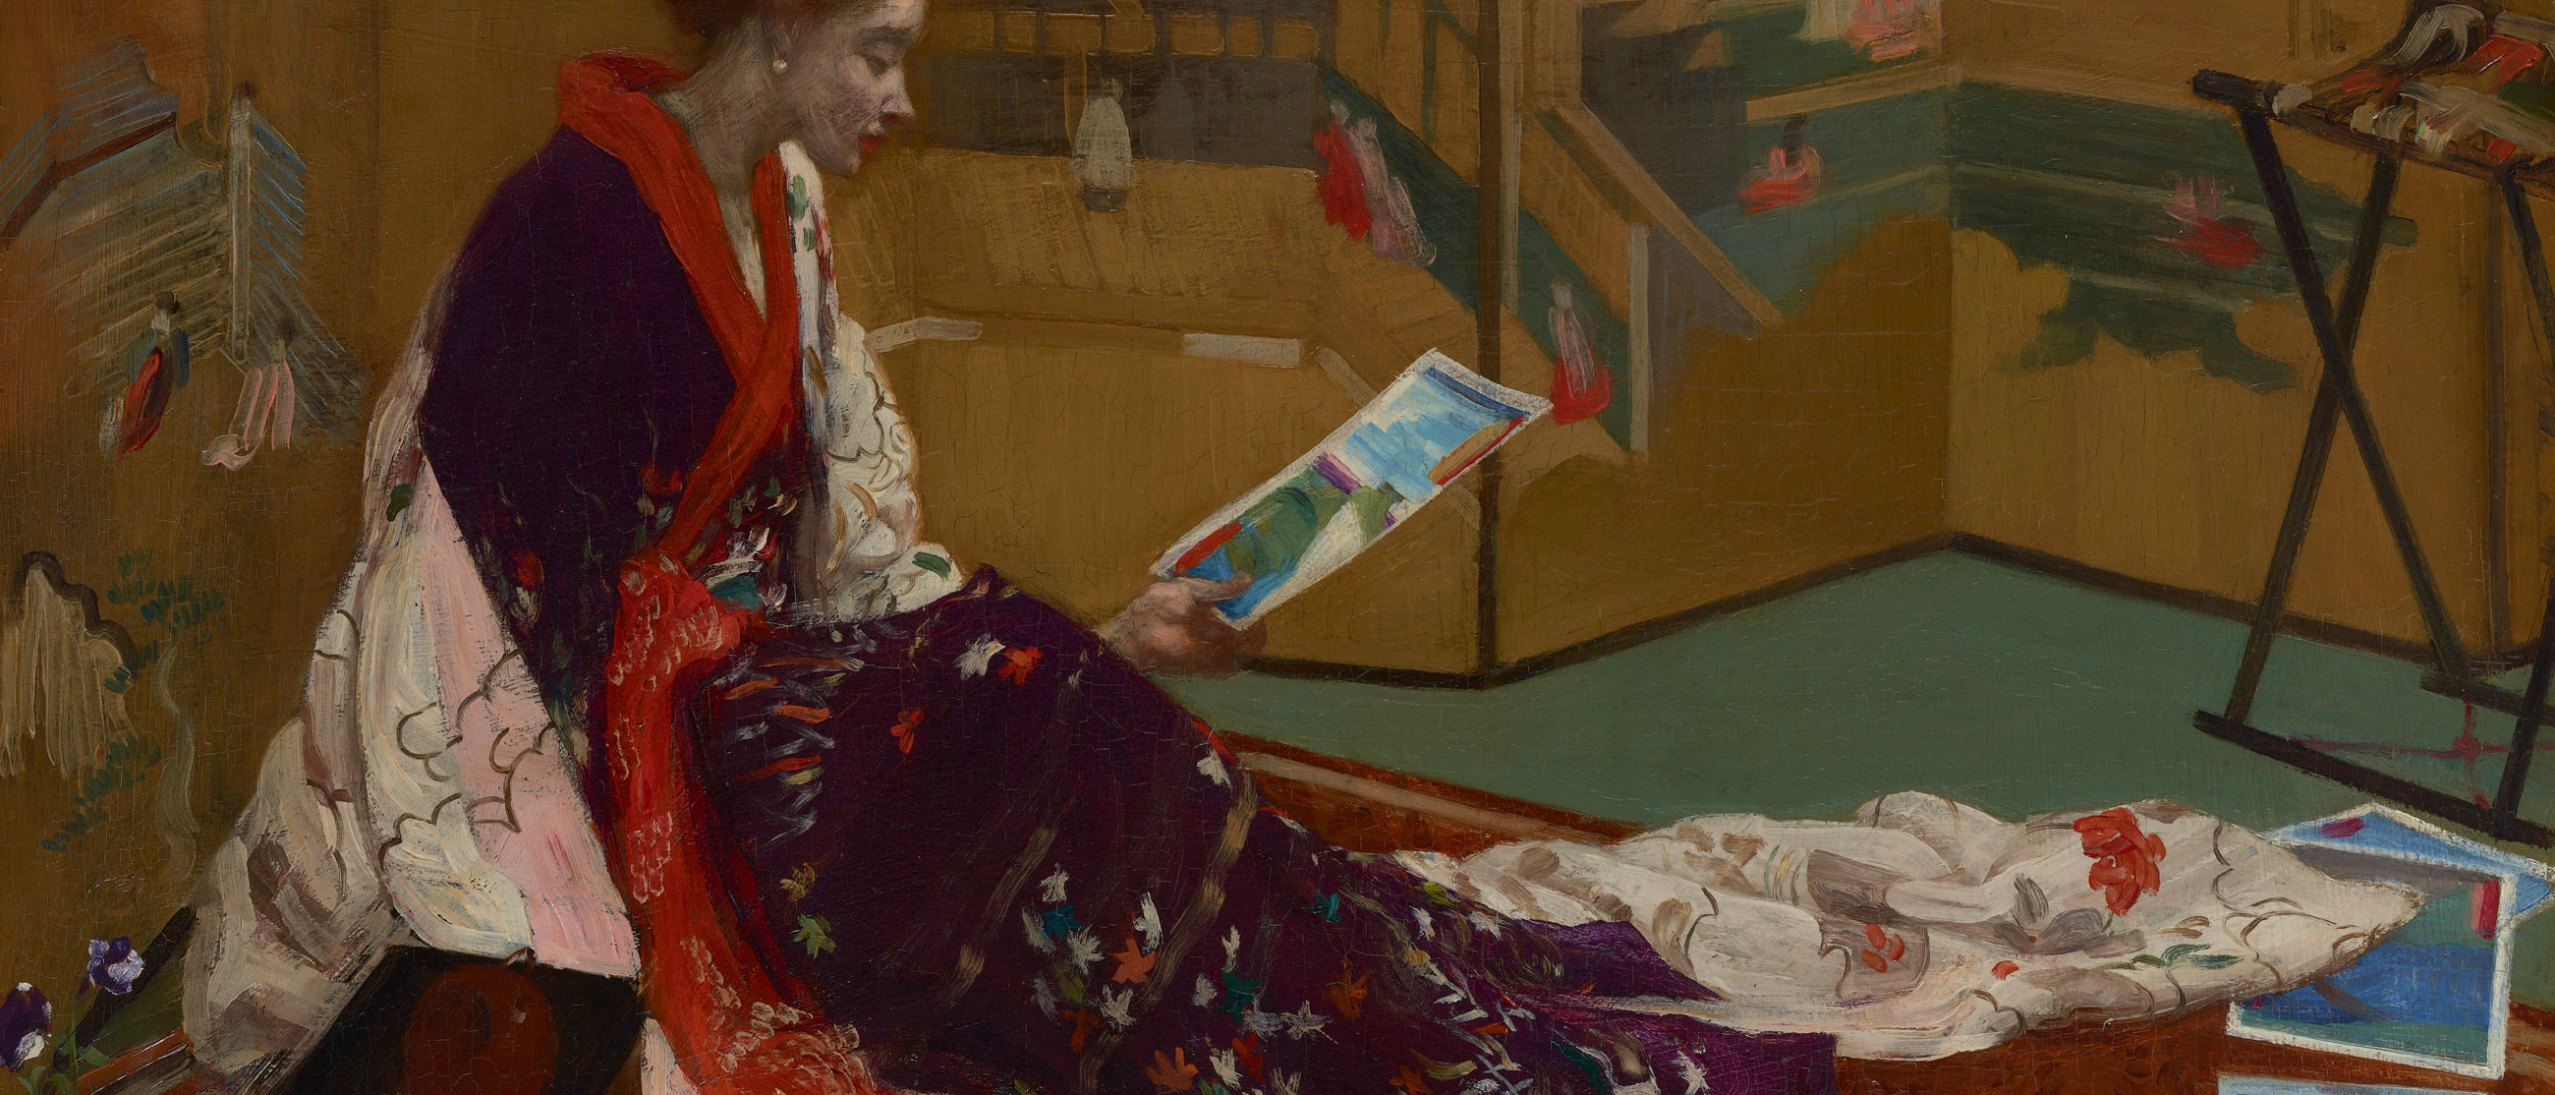 Caprice in Purple and Gold: The Golden Screen, F1904.75a